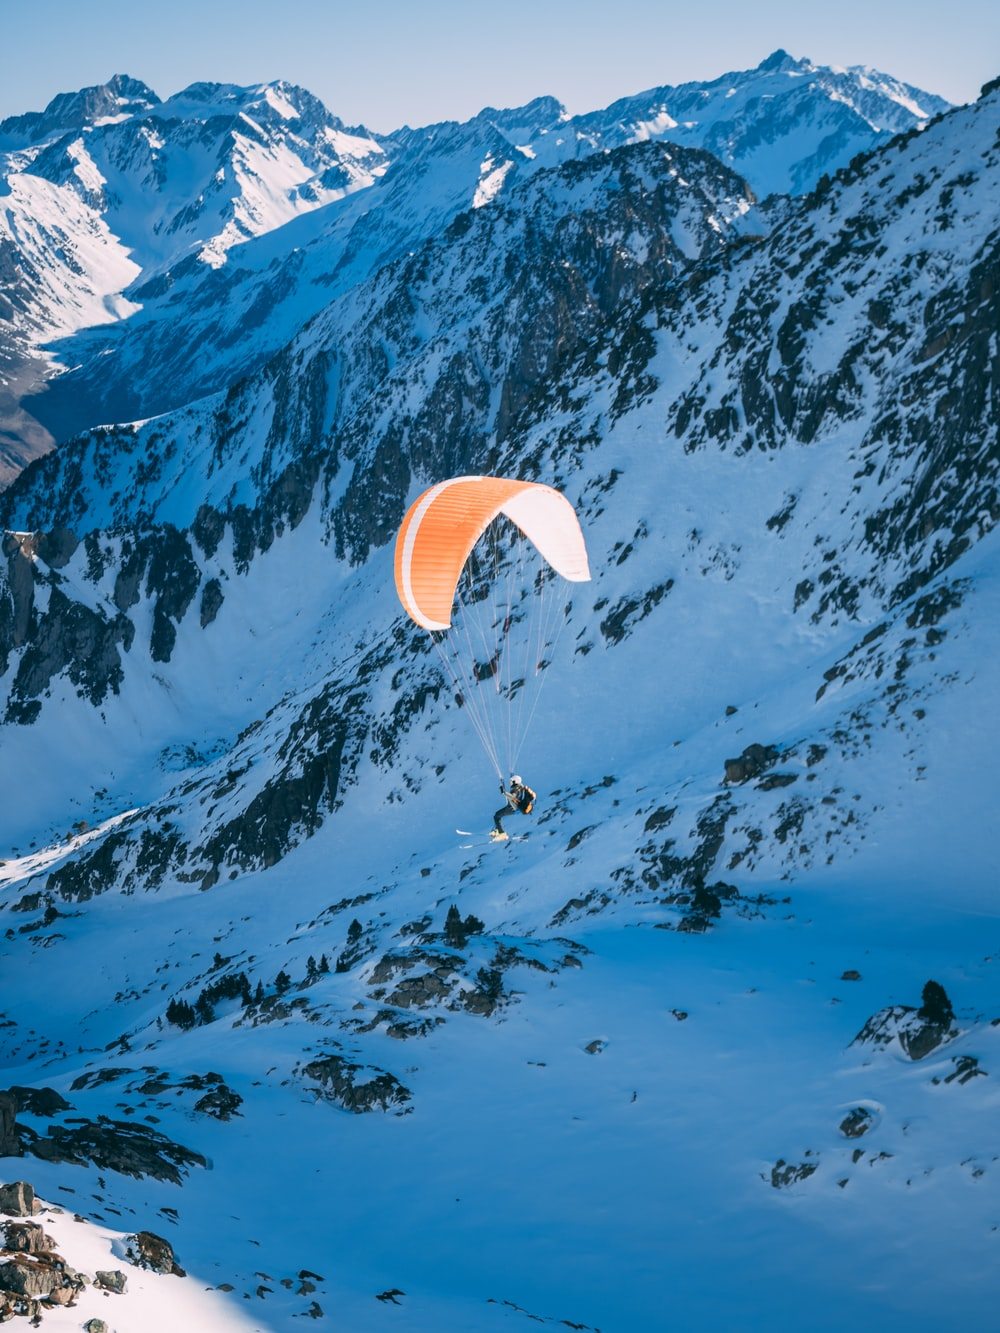 person riding parachute above glacier mountains and snowfield